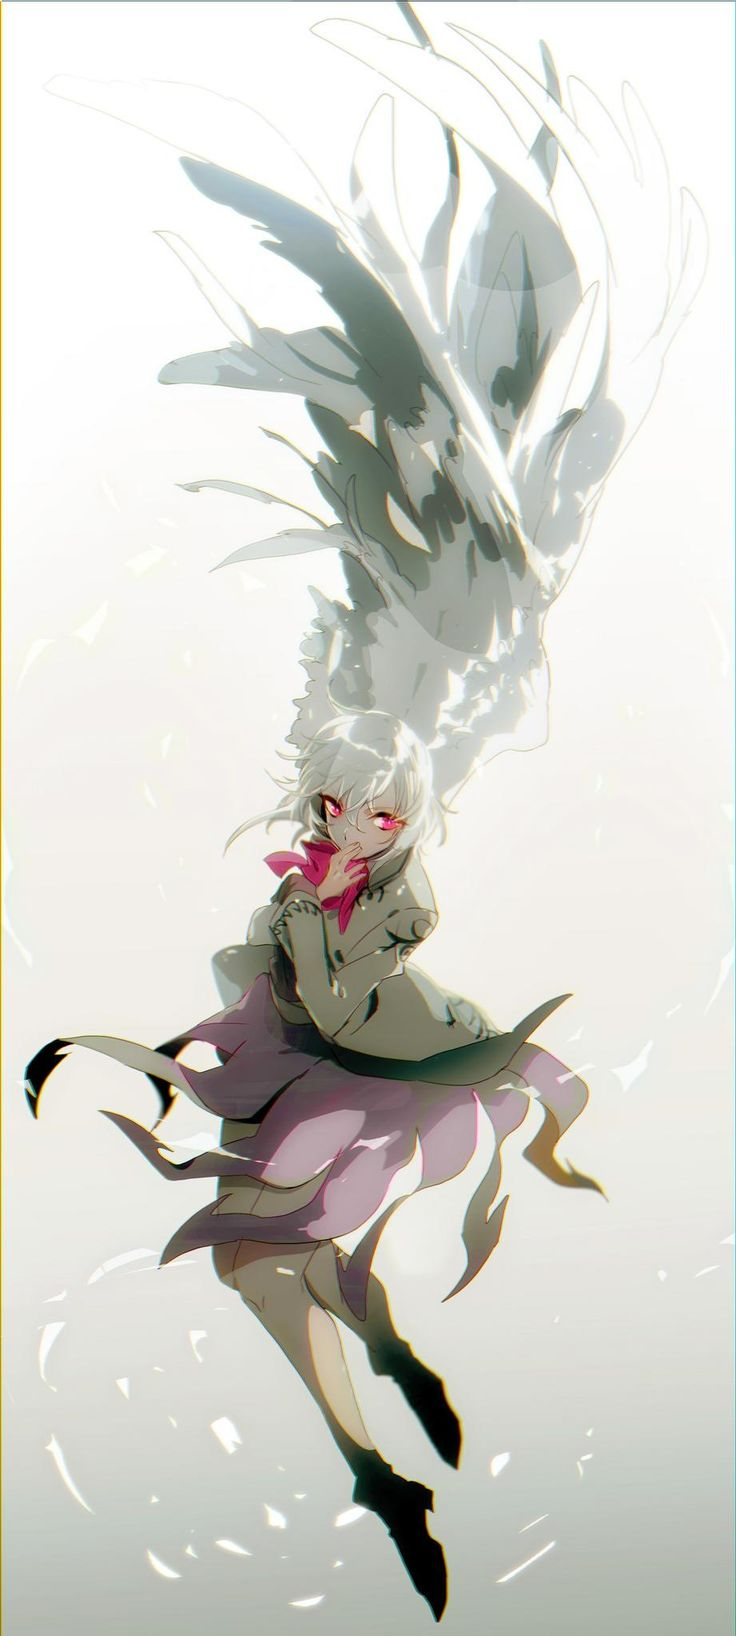 1girl boots border chromatic_aberration covering_mouth dress full_body gradient gradient_background highres kishin_sagume long_sleeves looking_to_the_side no-kan pink_eyes purple_dress short_hair silver_hair single_wing solo touhou vest wings